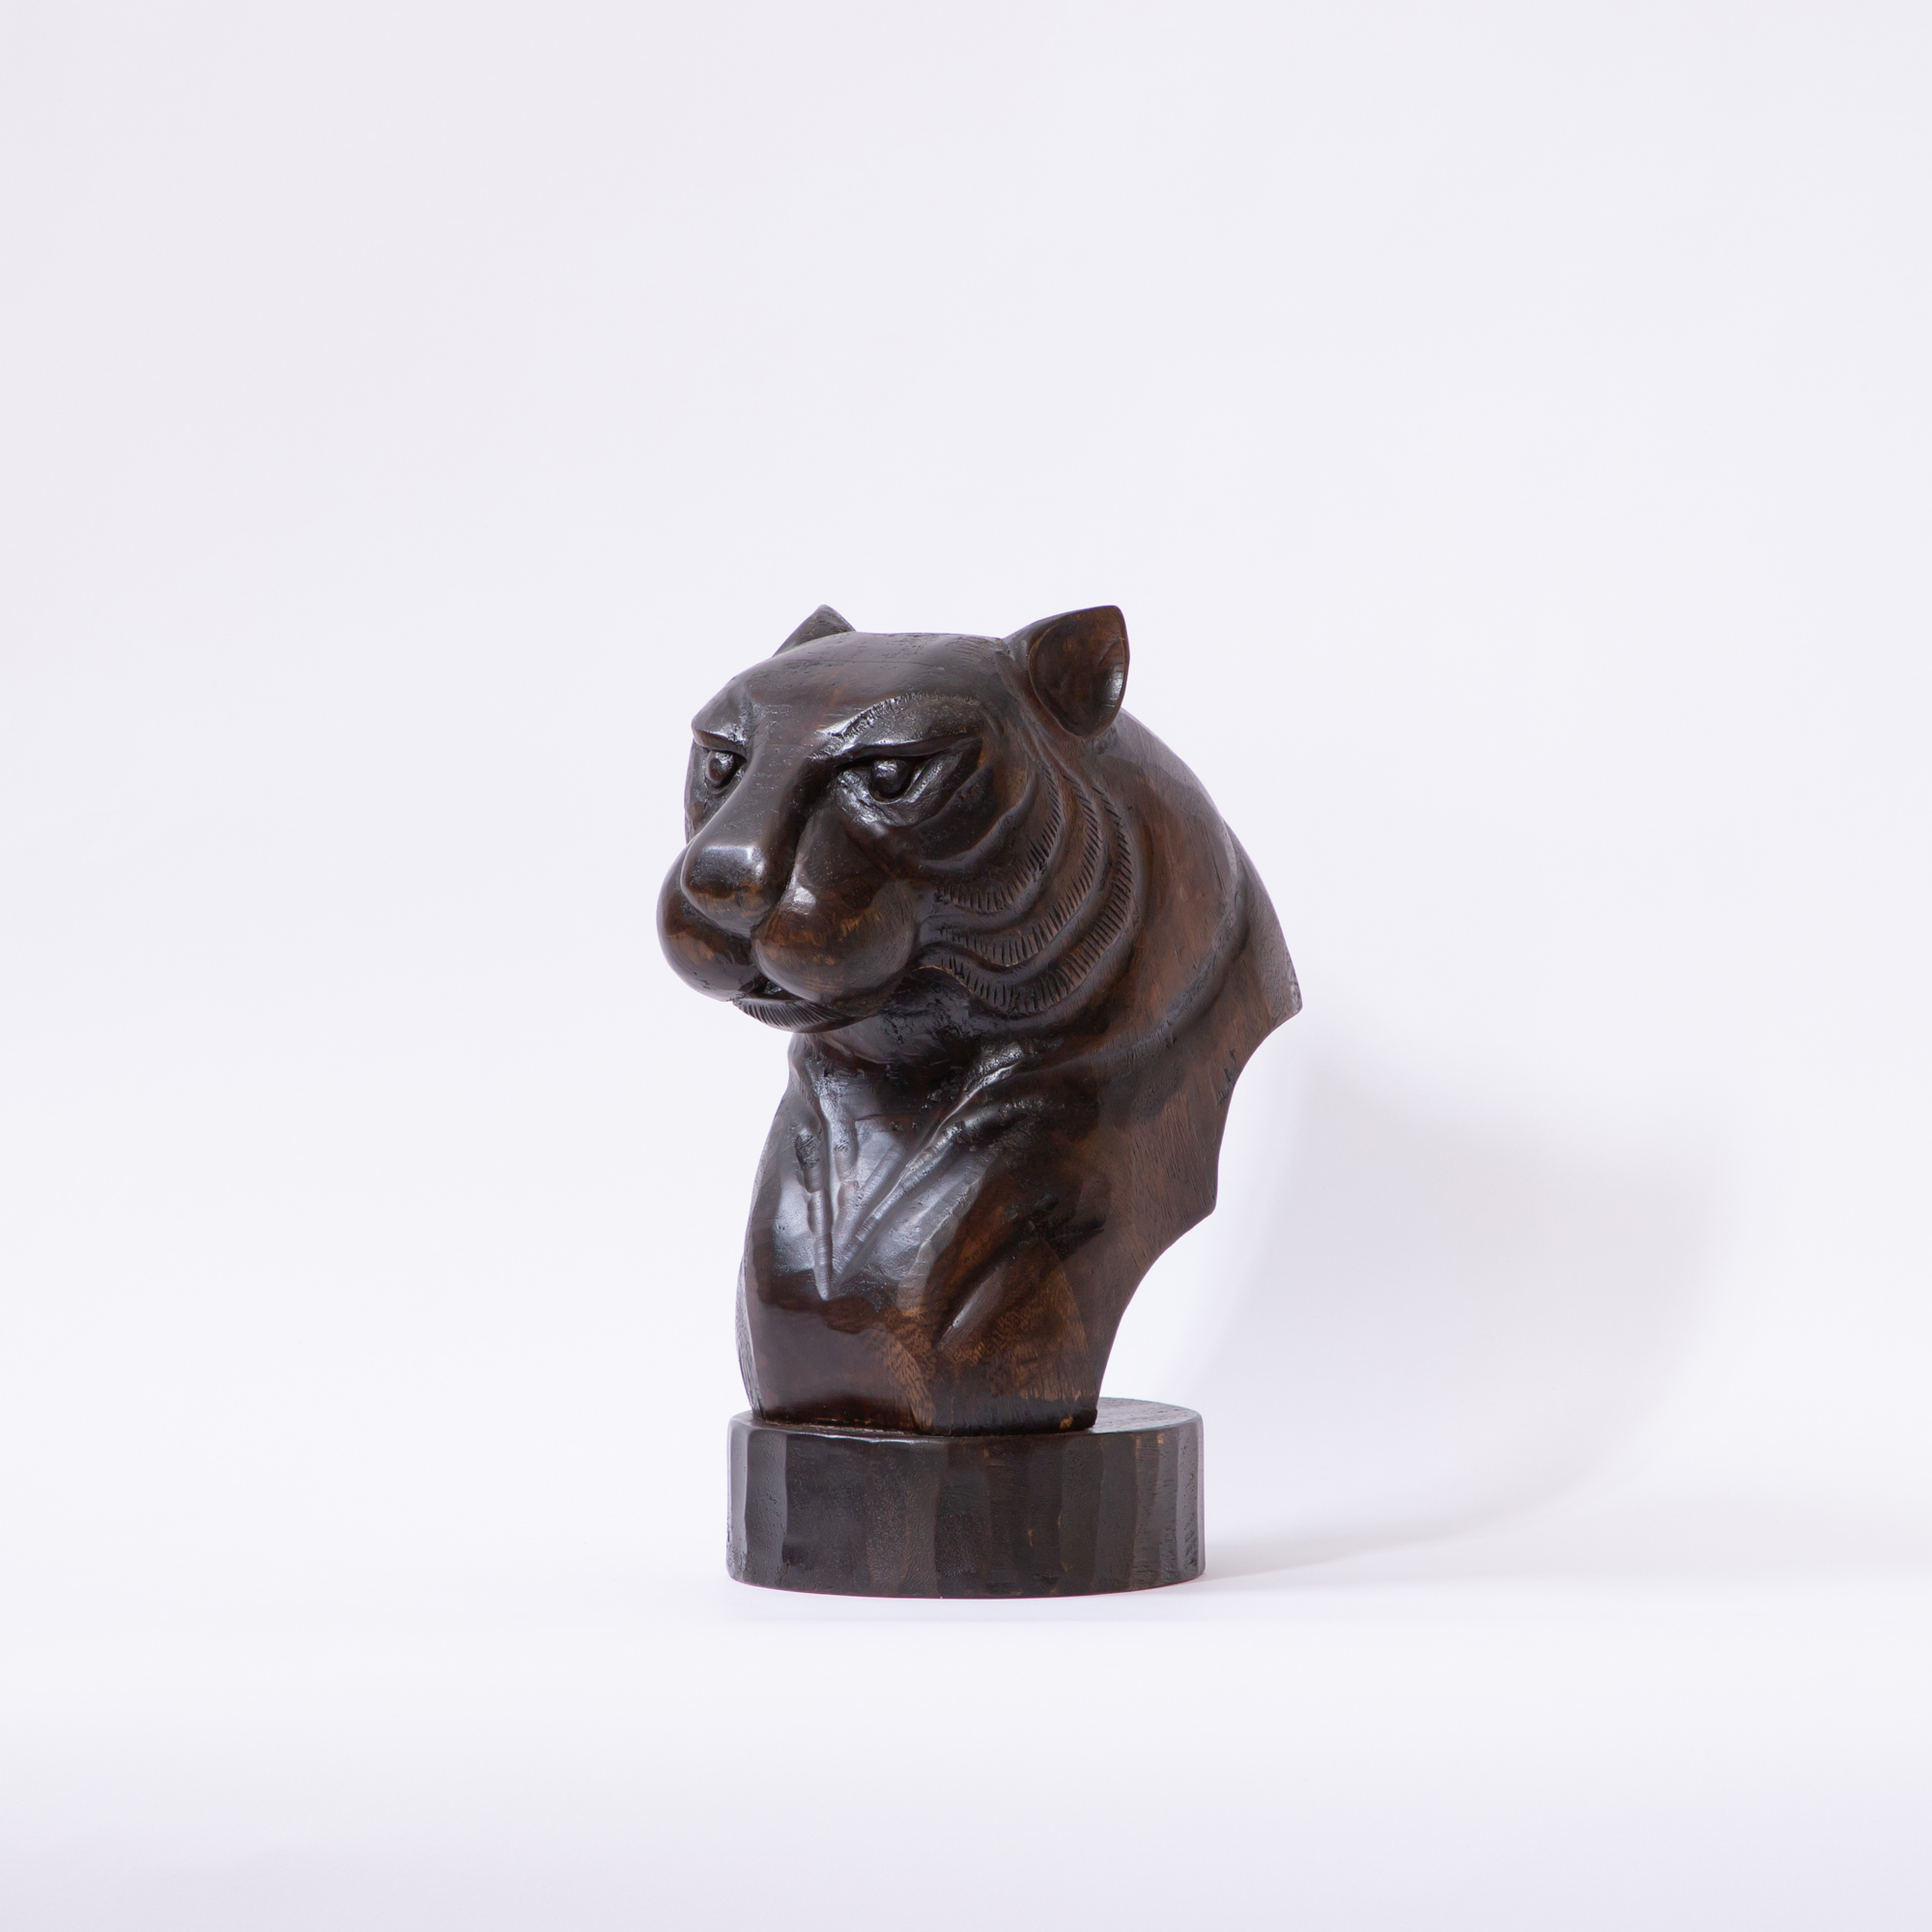 The Mountain Lion Solid Wood Décor Object